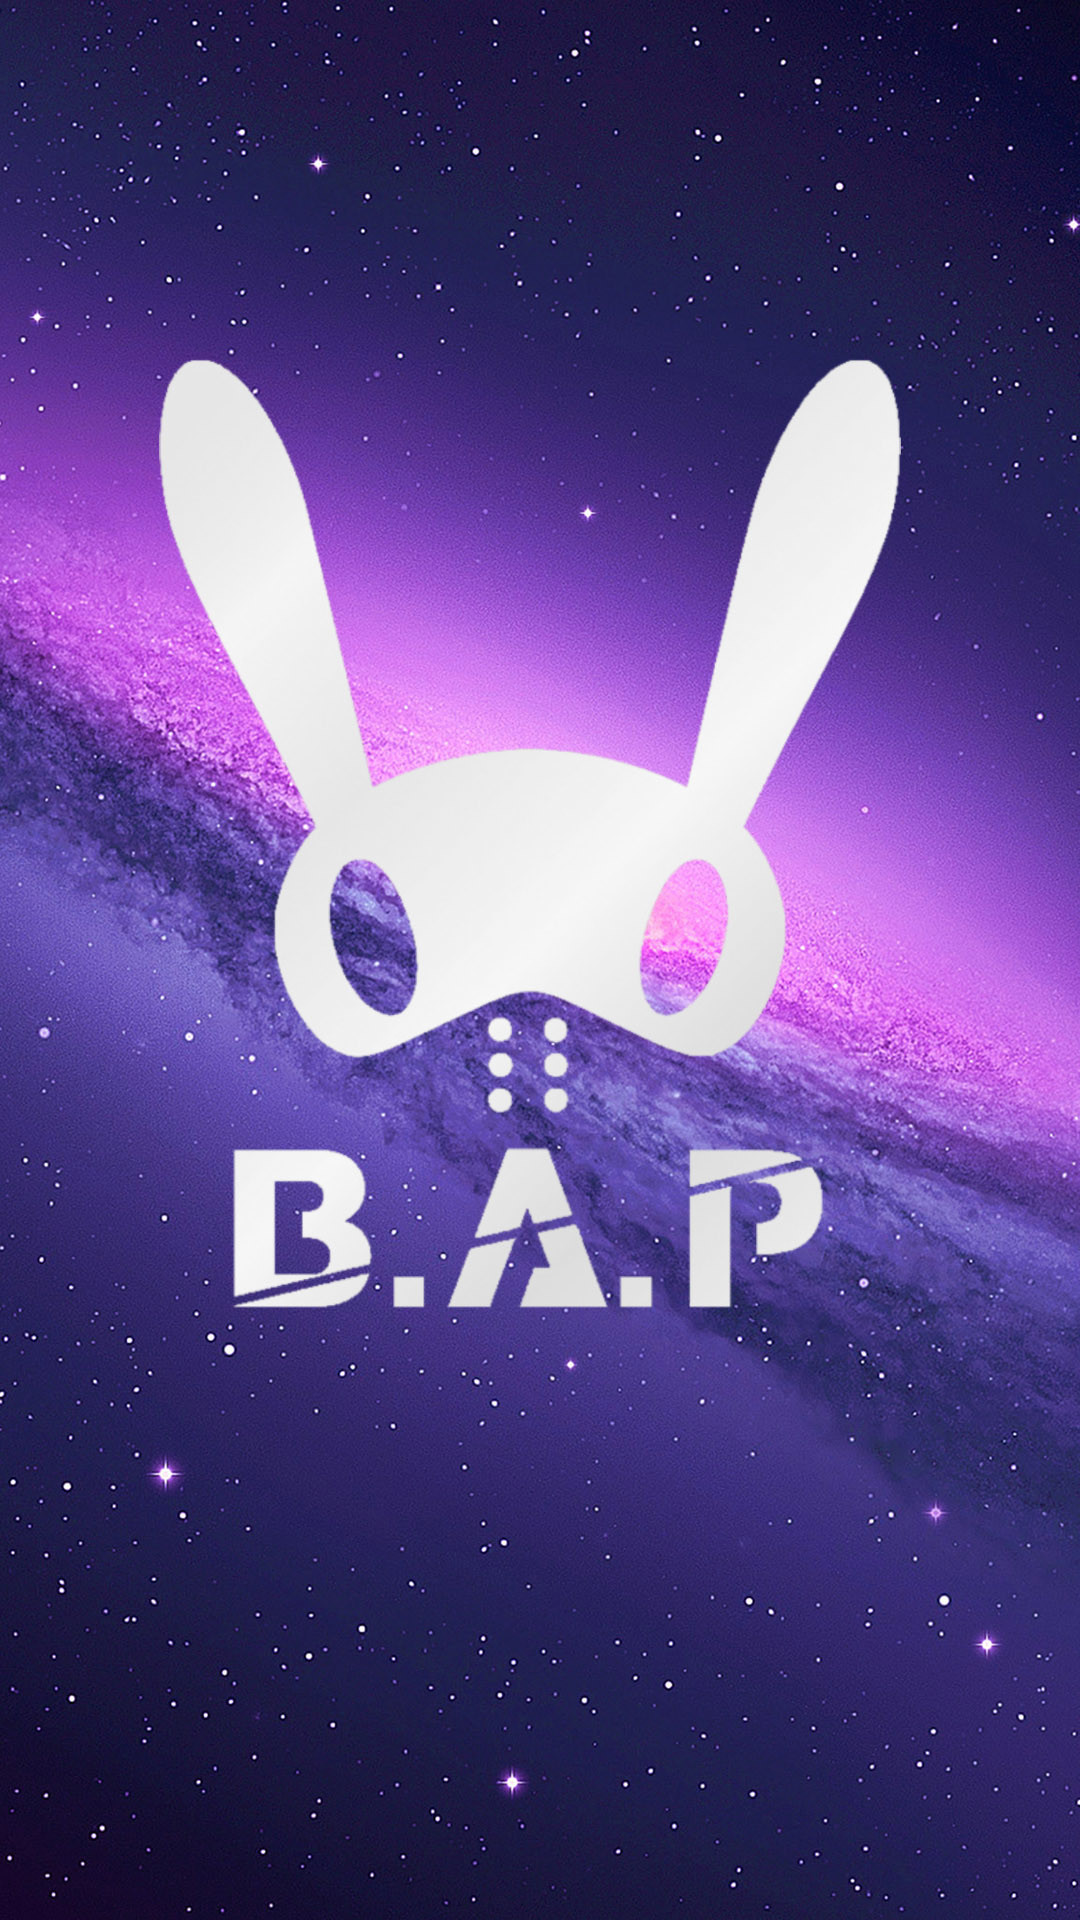 Bap High Quality Wallpapers Gallery, PWK.780410456